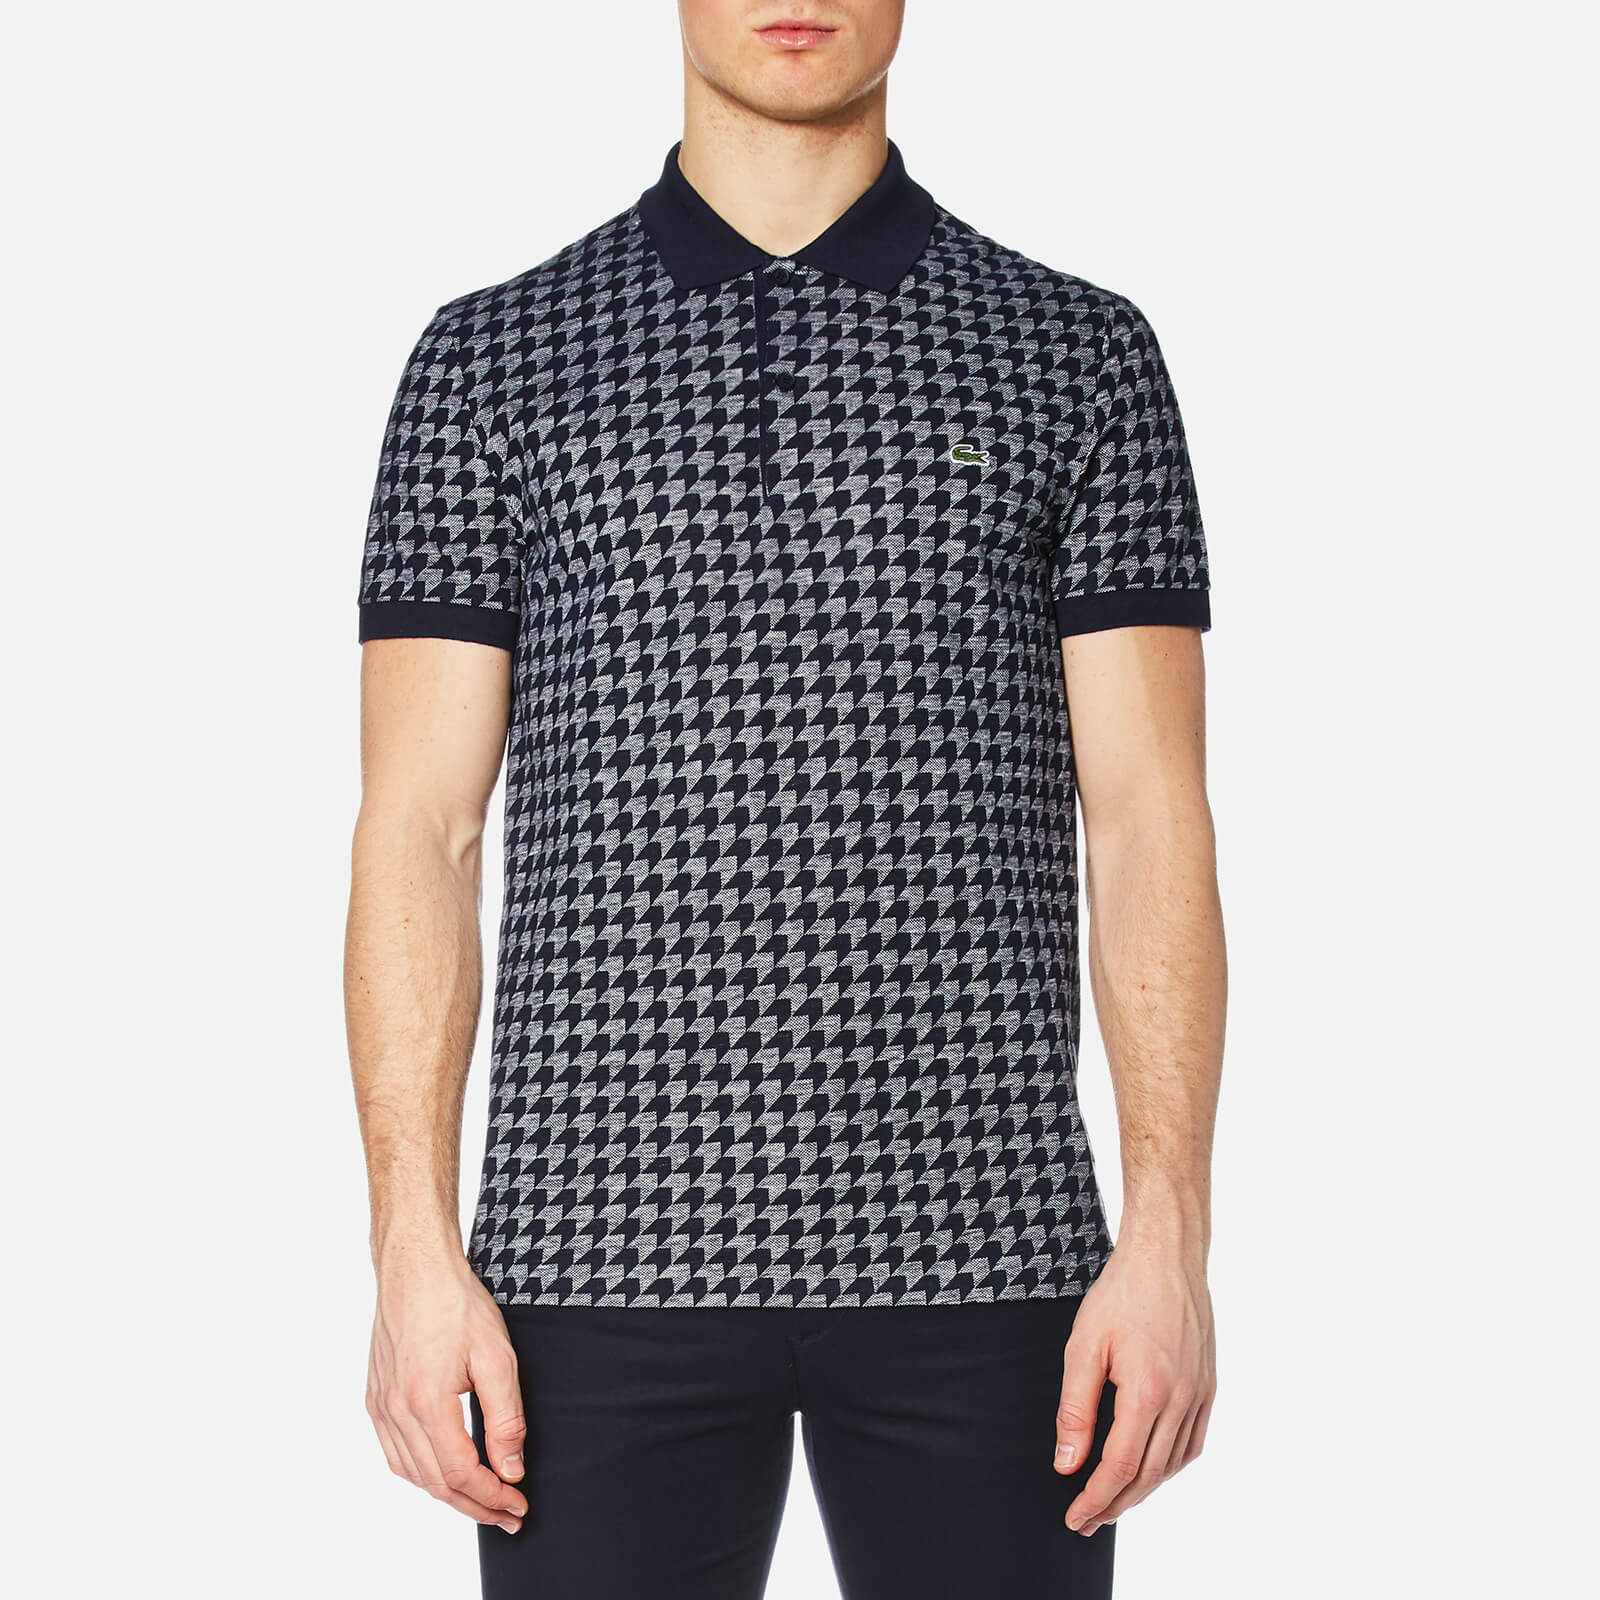 a0c595a0 Lacoste Men's Oversized Houndstooth Printed Polo Shirt - Navy - Free UK  Delivery over £50